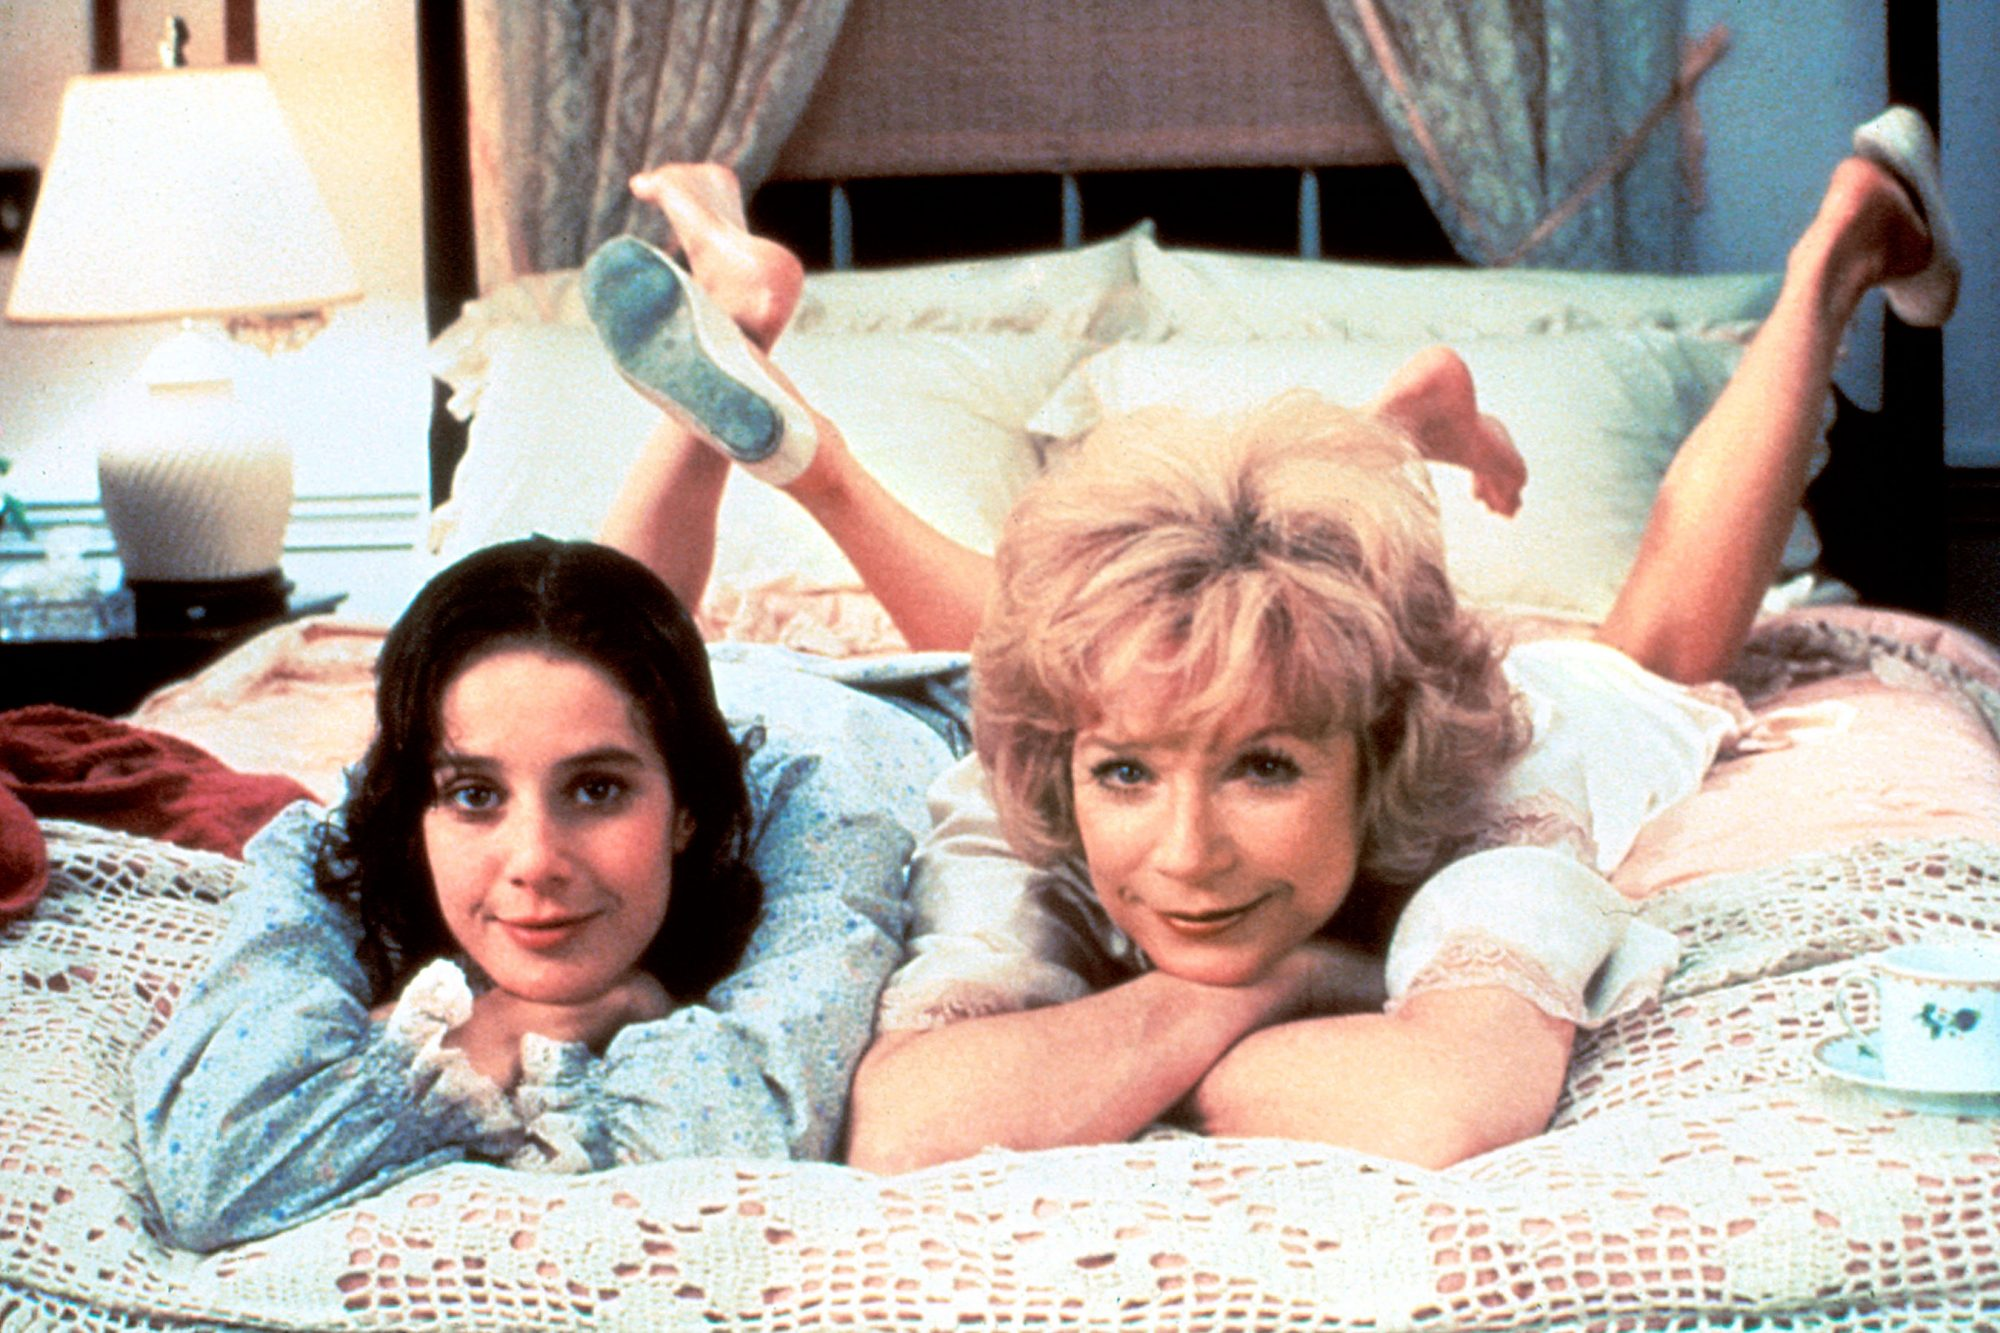 What to stream this week: Terms of Endearment